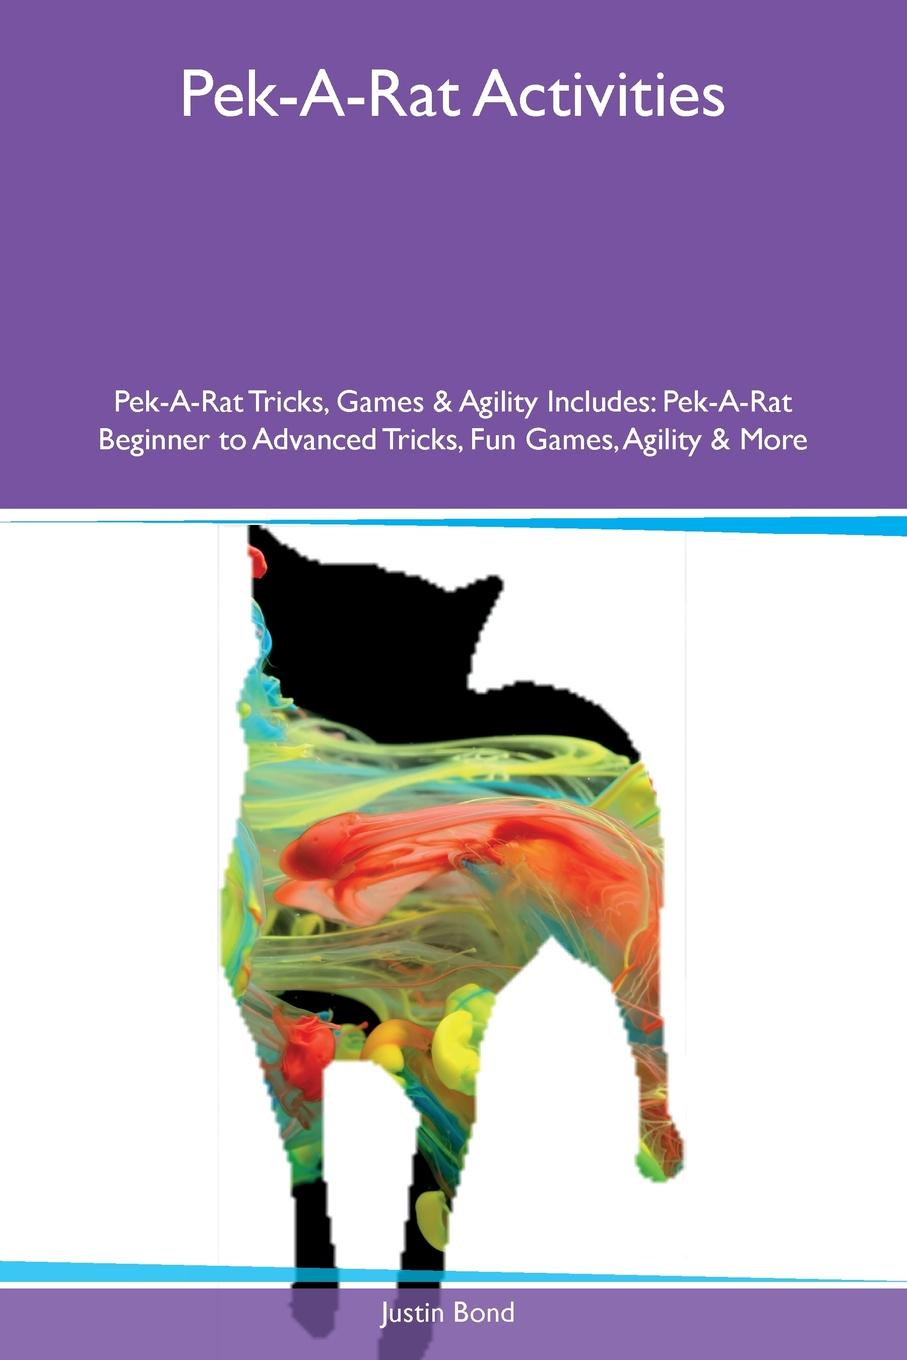 Justin Bond Pek-A-Rat Activities Pek-A-Rat Tricks, Games & Agility Includes. Pek-A-Rat Beginner to Advanced Tricks, Fun Games, Agility & More the rat brain in stereotaxic coordinates